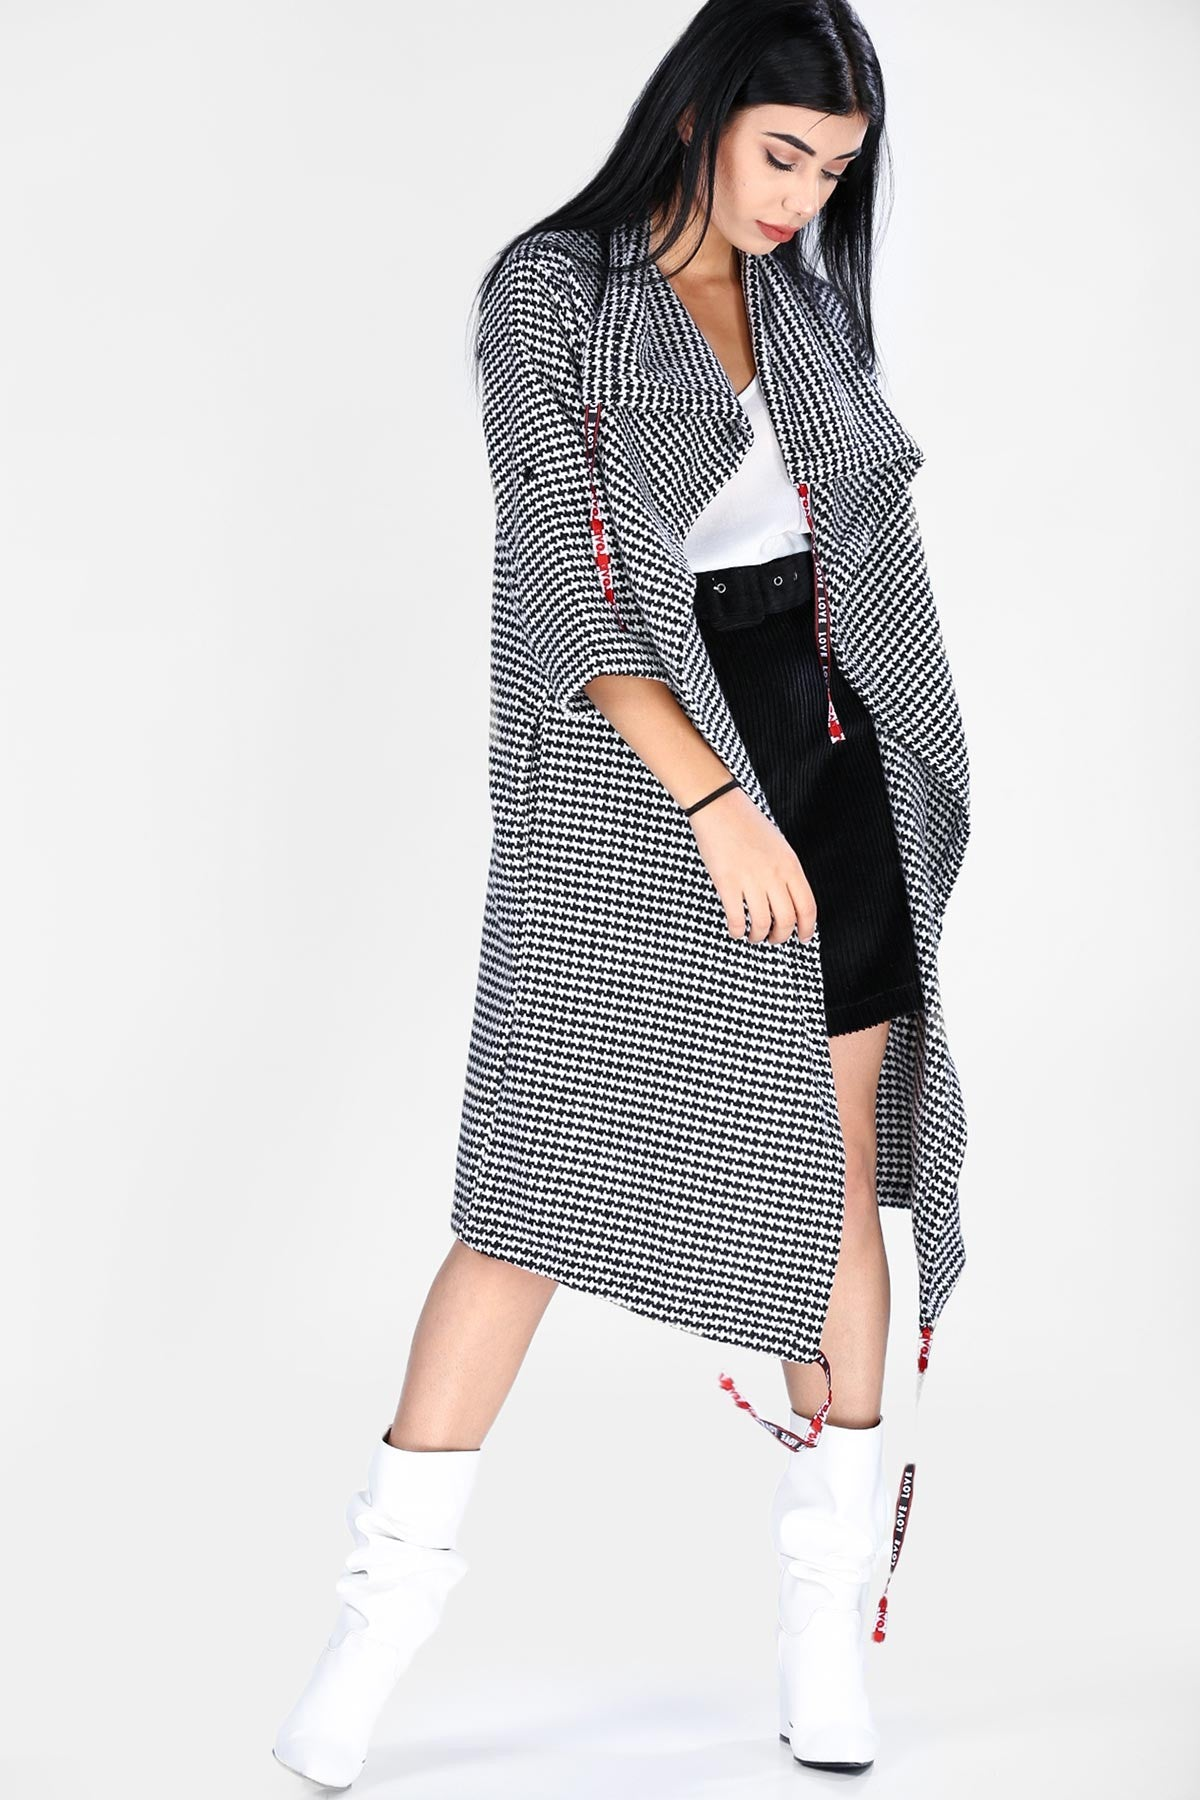 Women's Long Patterned Jacket - THE UNIQUE FIT